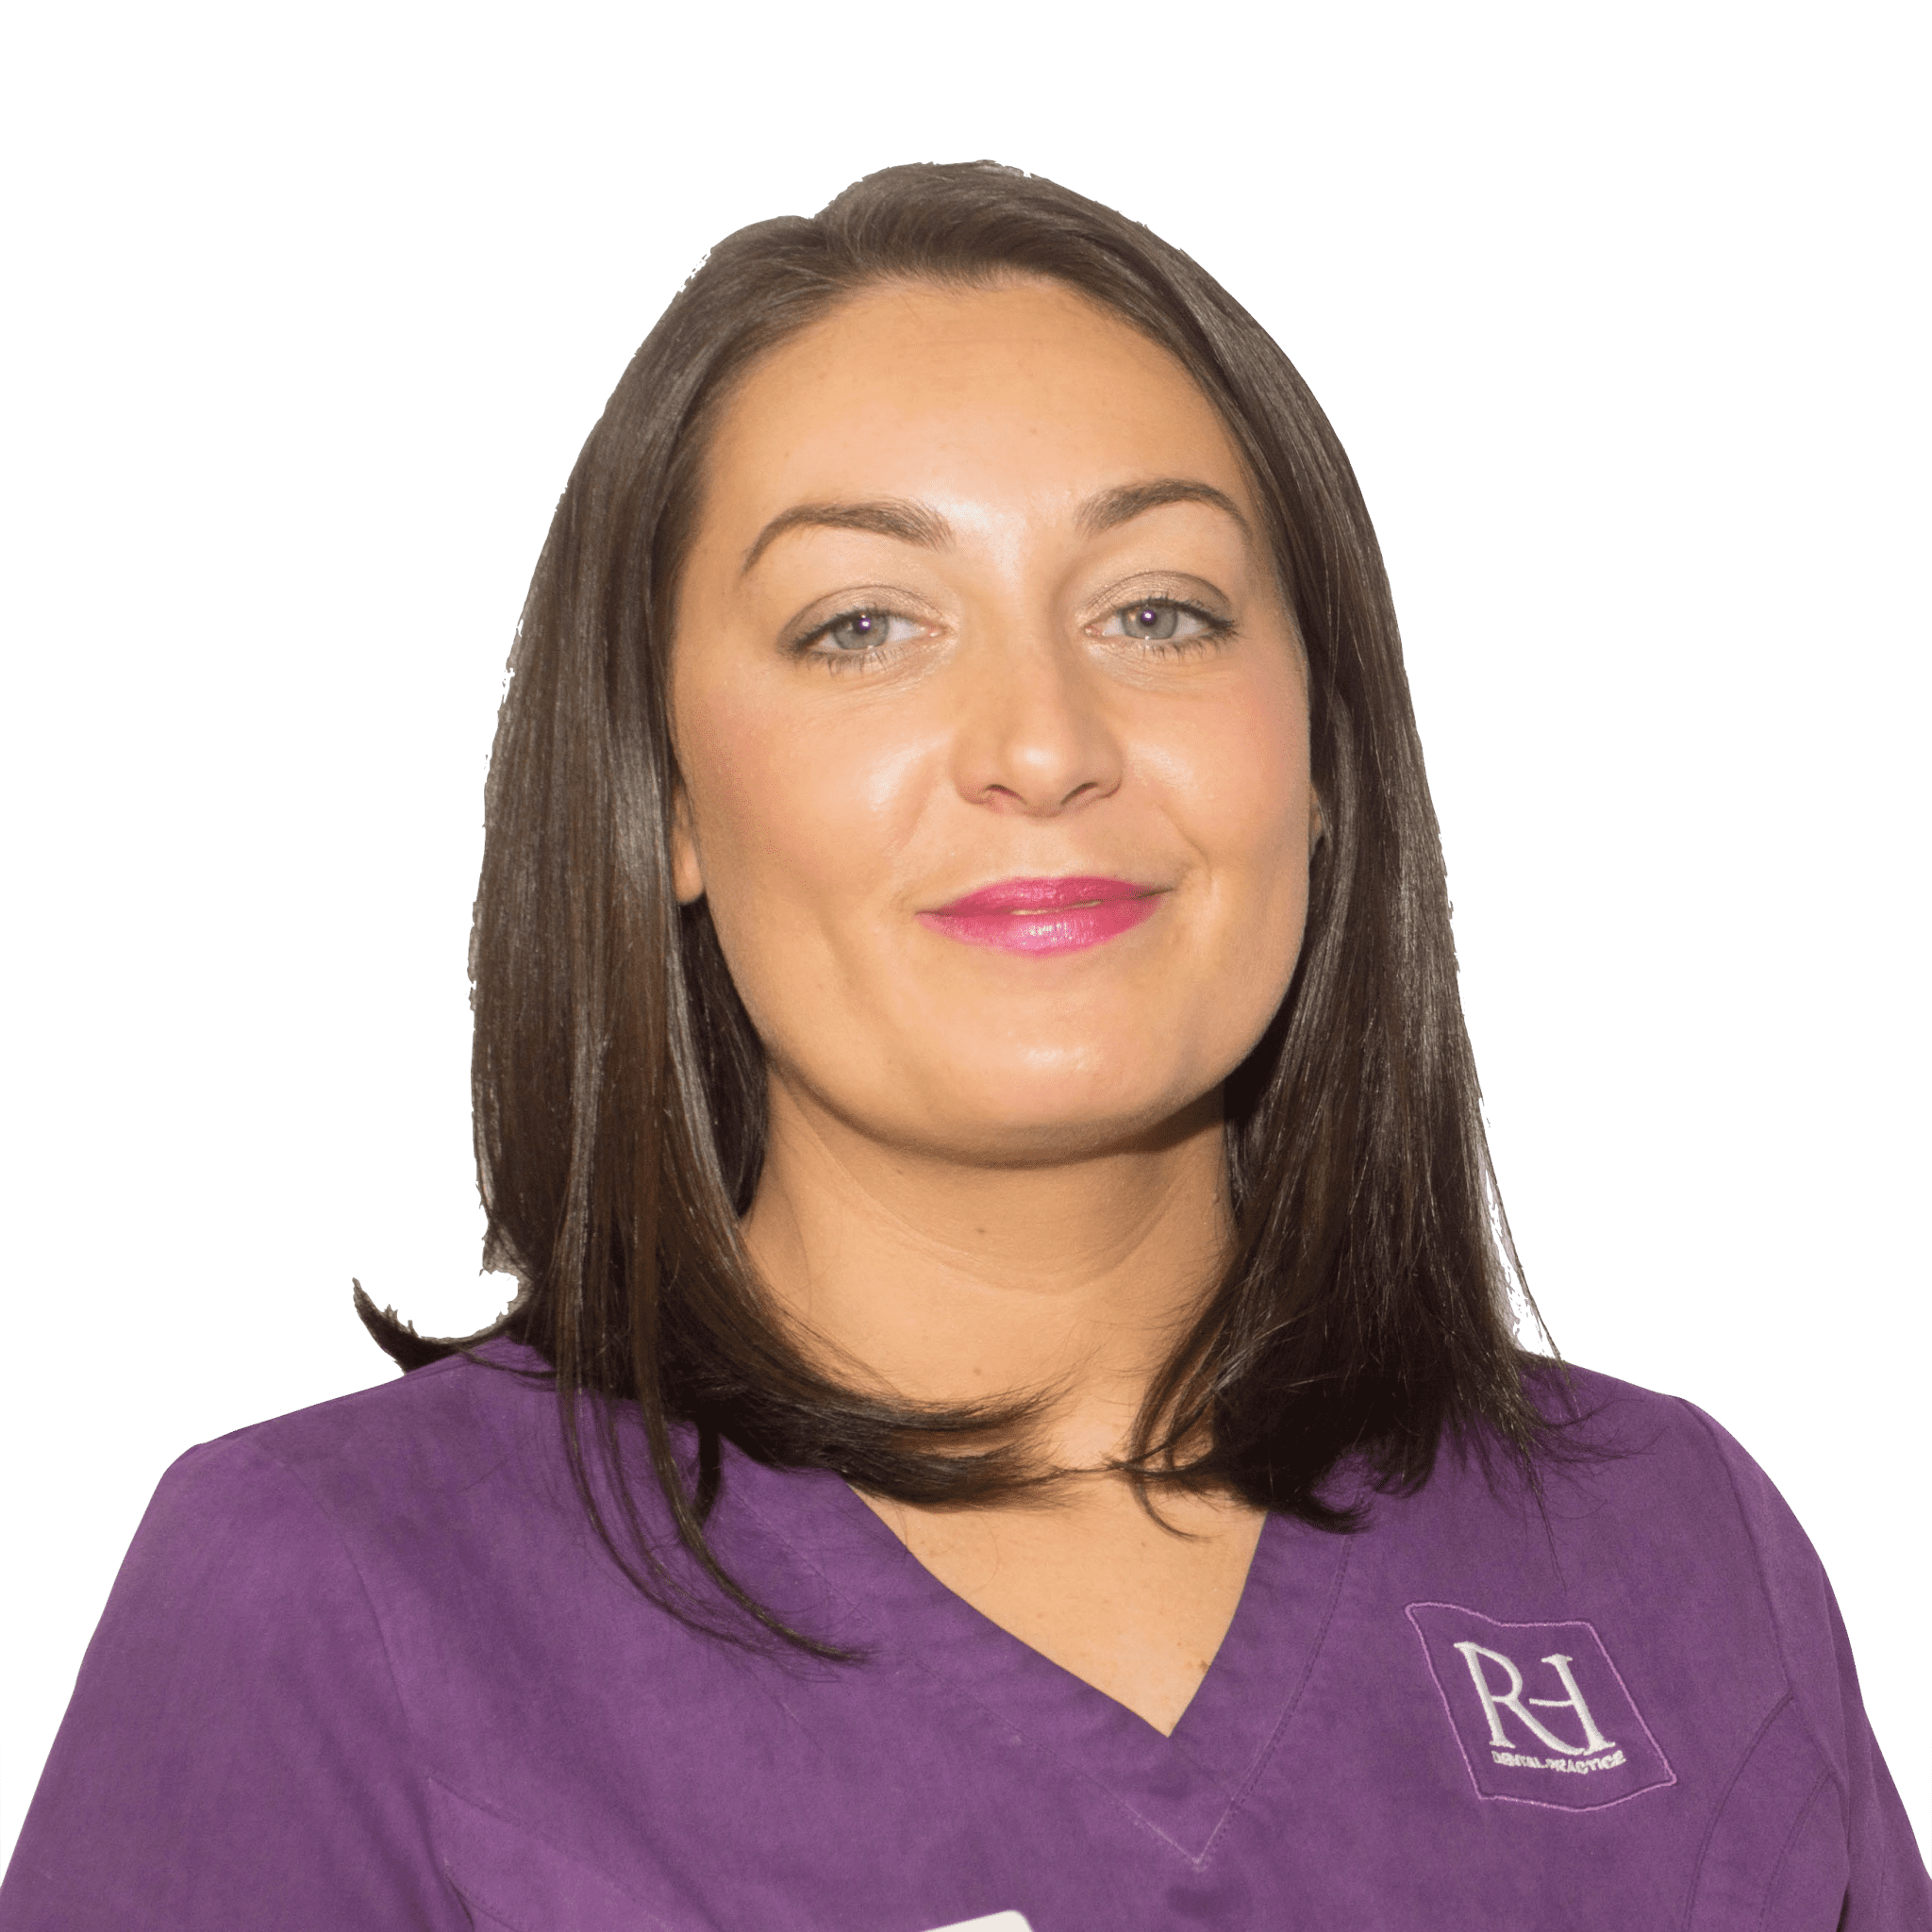 Natalie Doughty Practice Manager Rock House Dental Practice Headshot